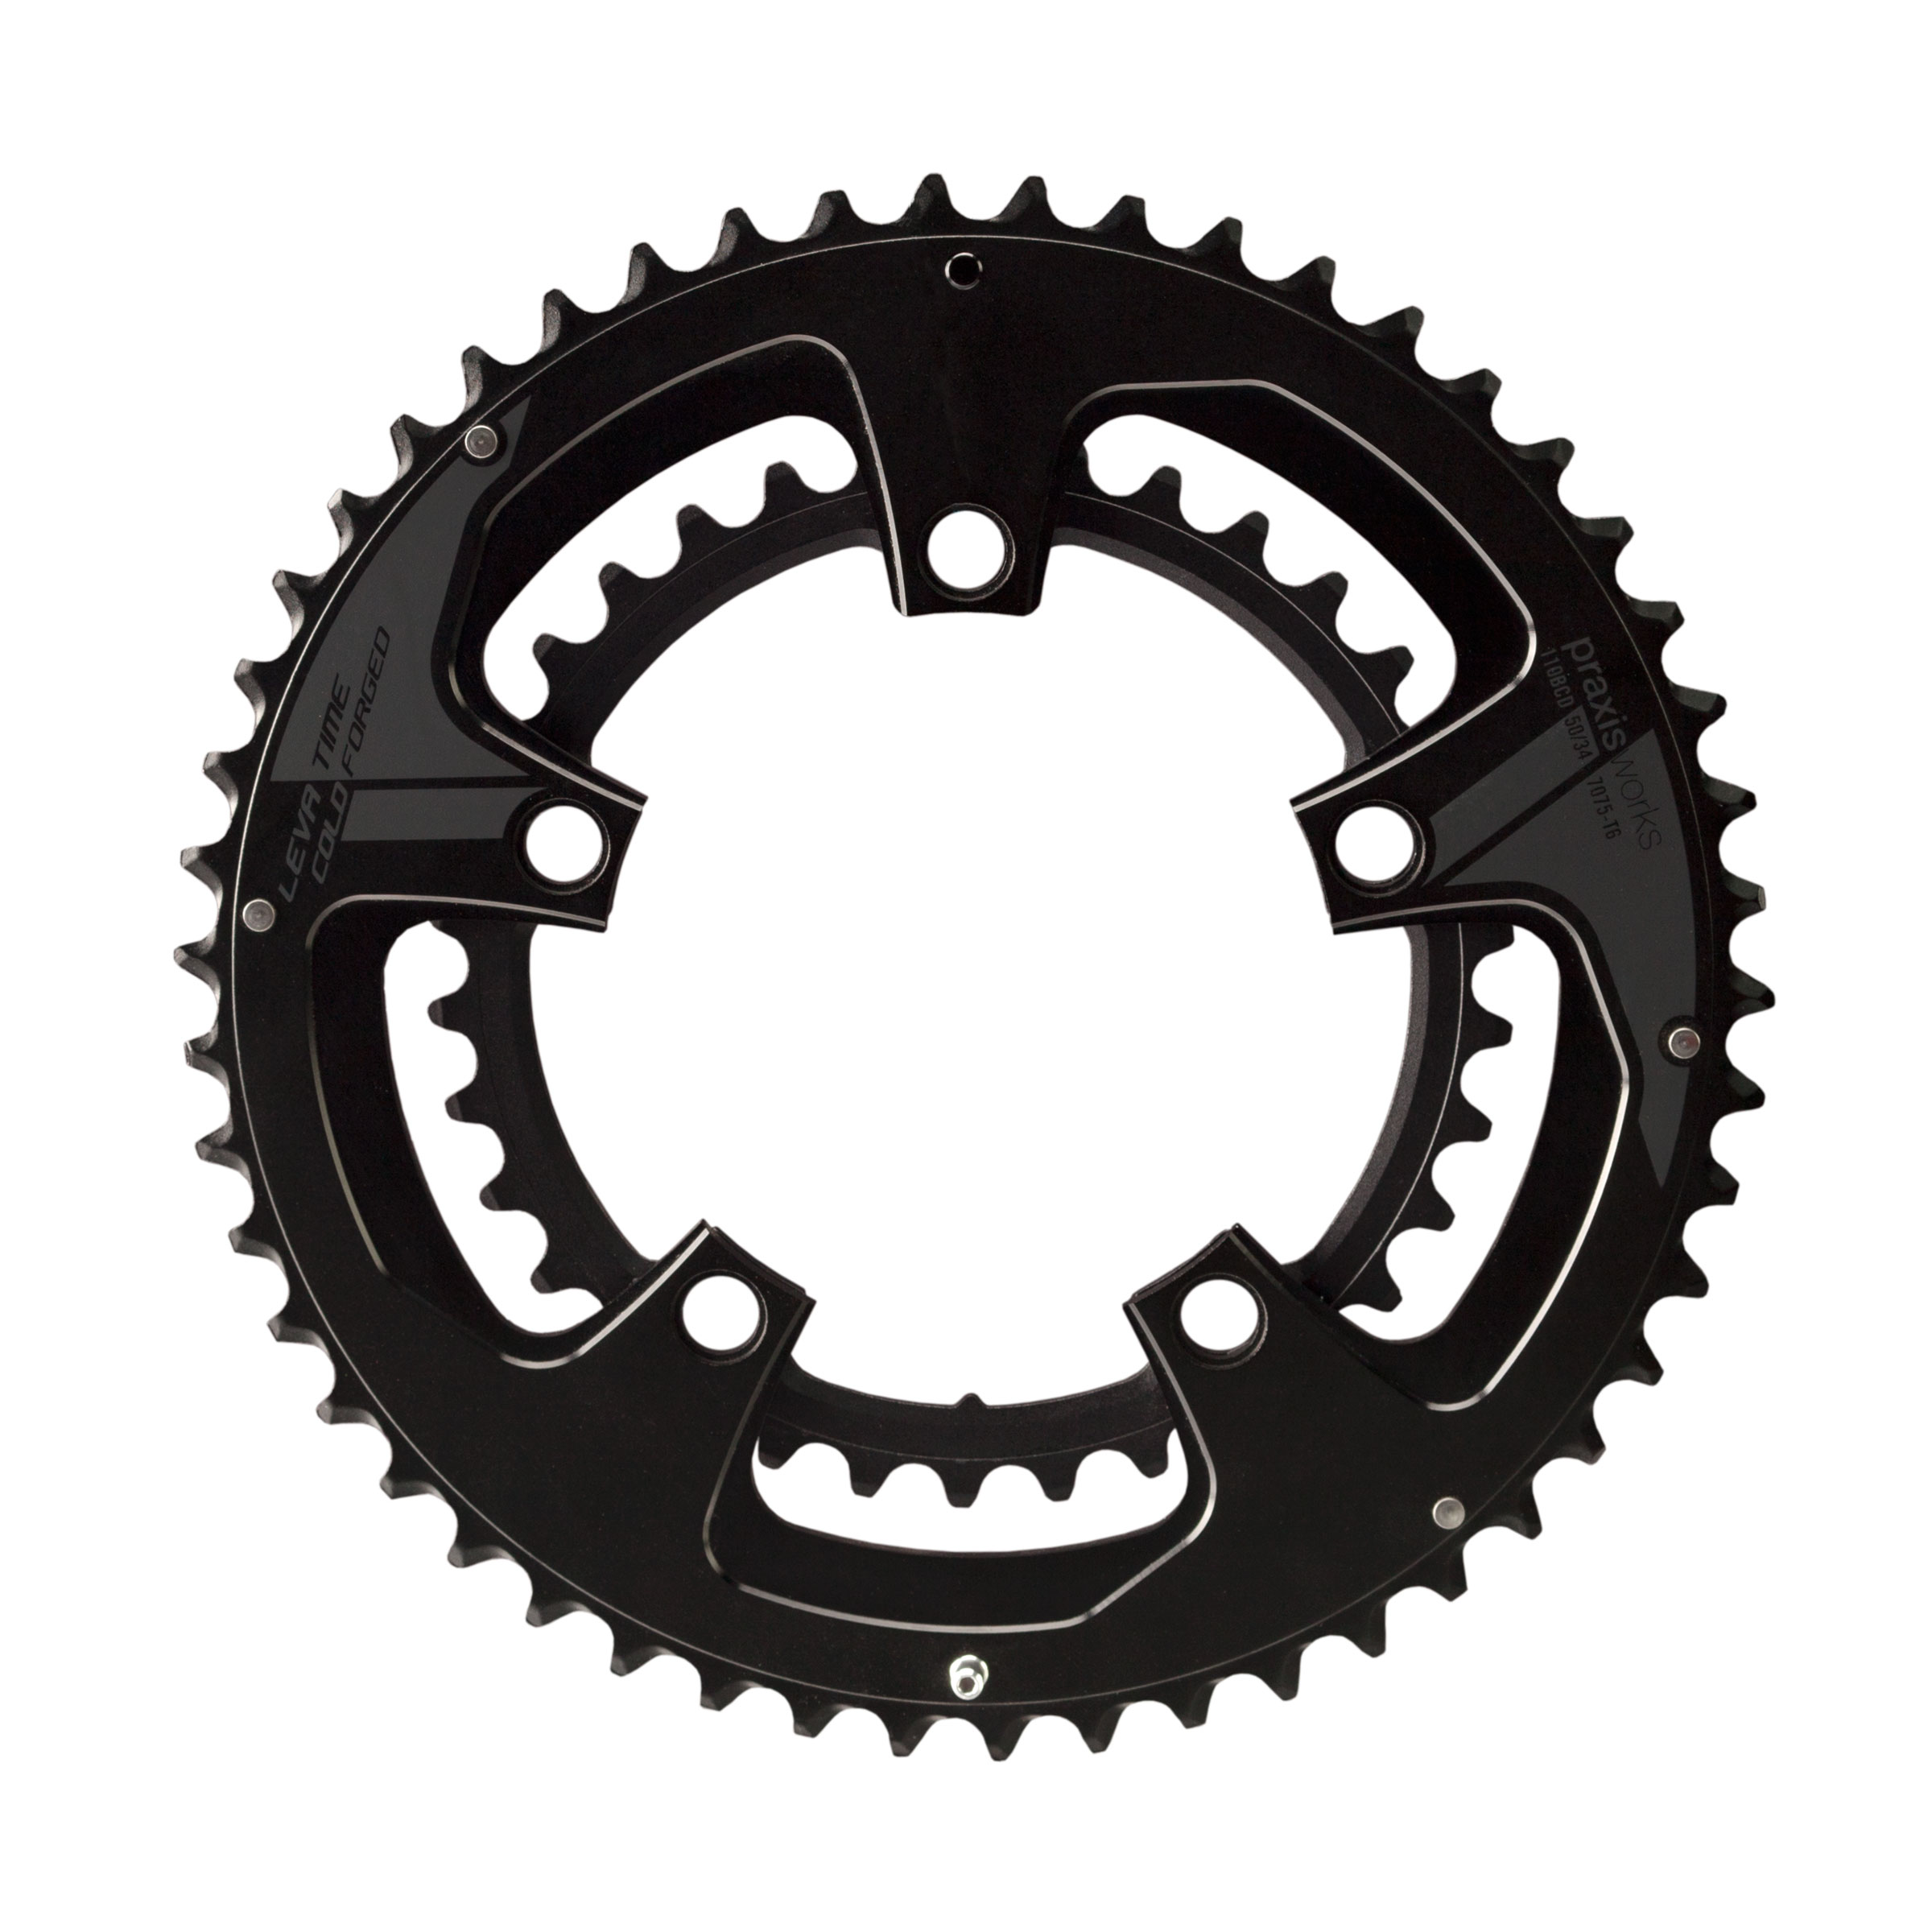 Praxis Works Buzz Compact Chainrings - 34/50